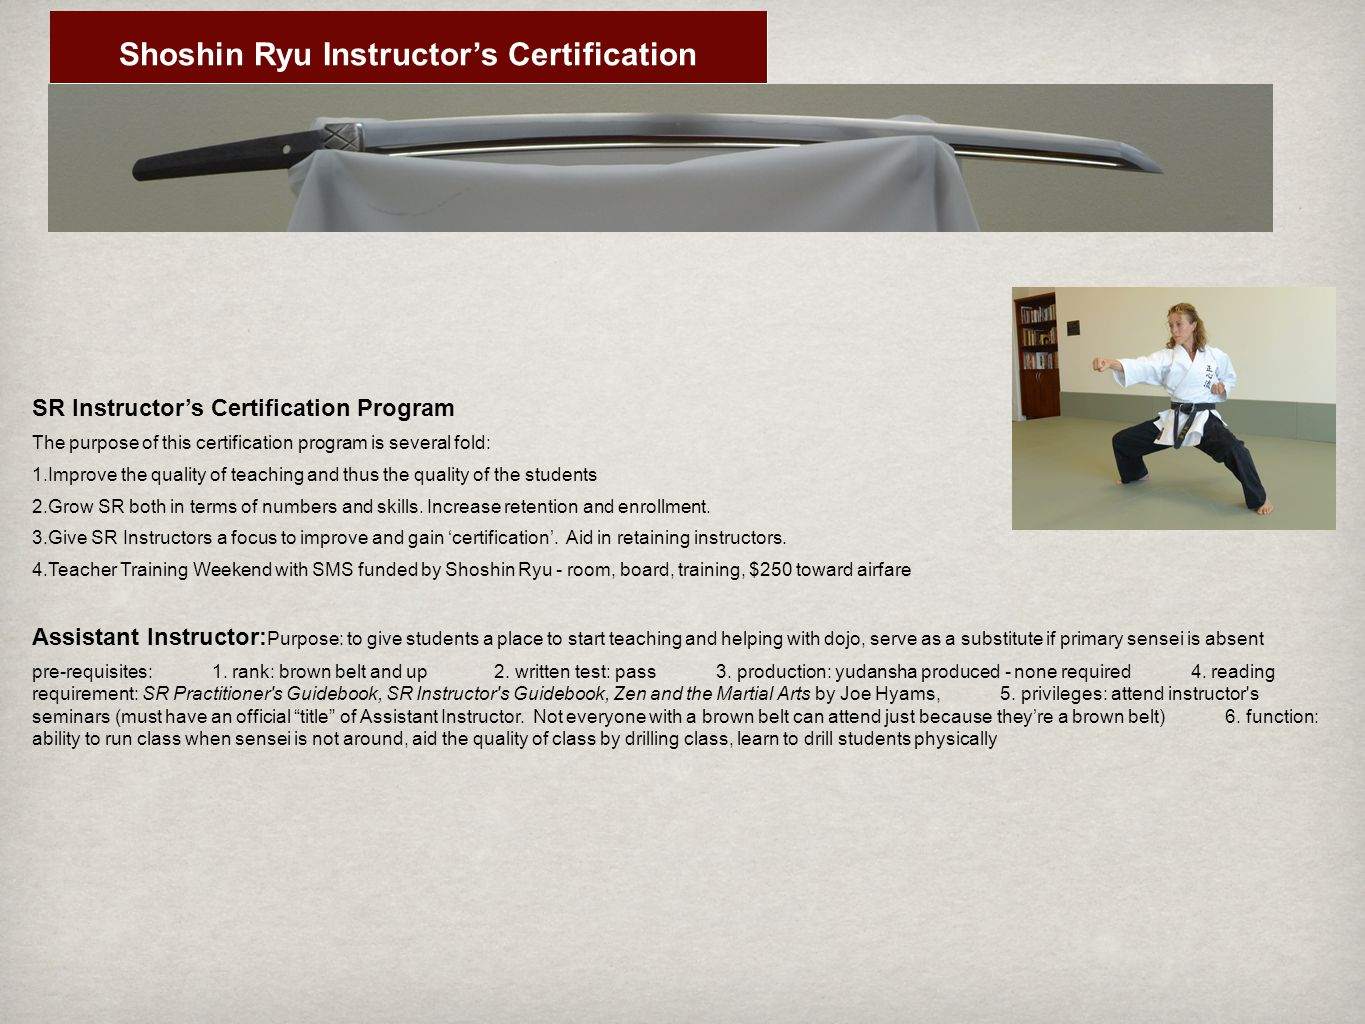 SR Instructor's Certification Program The purpose of this certification program is several fold: 1.Improve the quality of teaching and thus the quality of the students 2.Grow SR both in terms of numbers and skills.